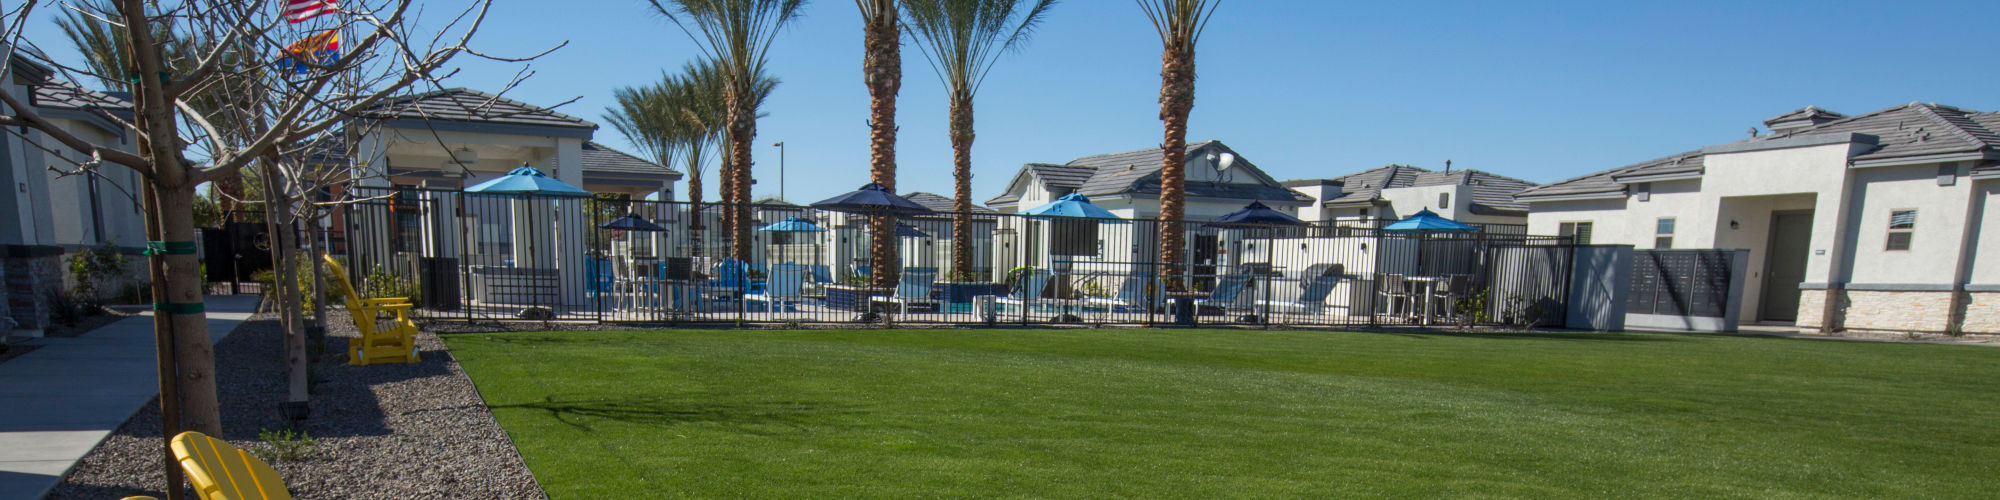 Apply to live at Christopher Todd Communities At Marley Park in Surprise, Arizona